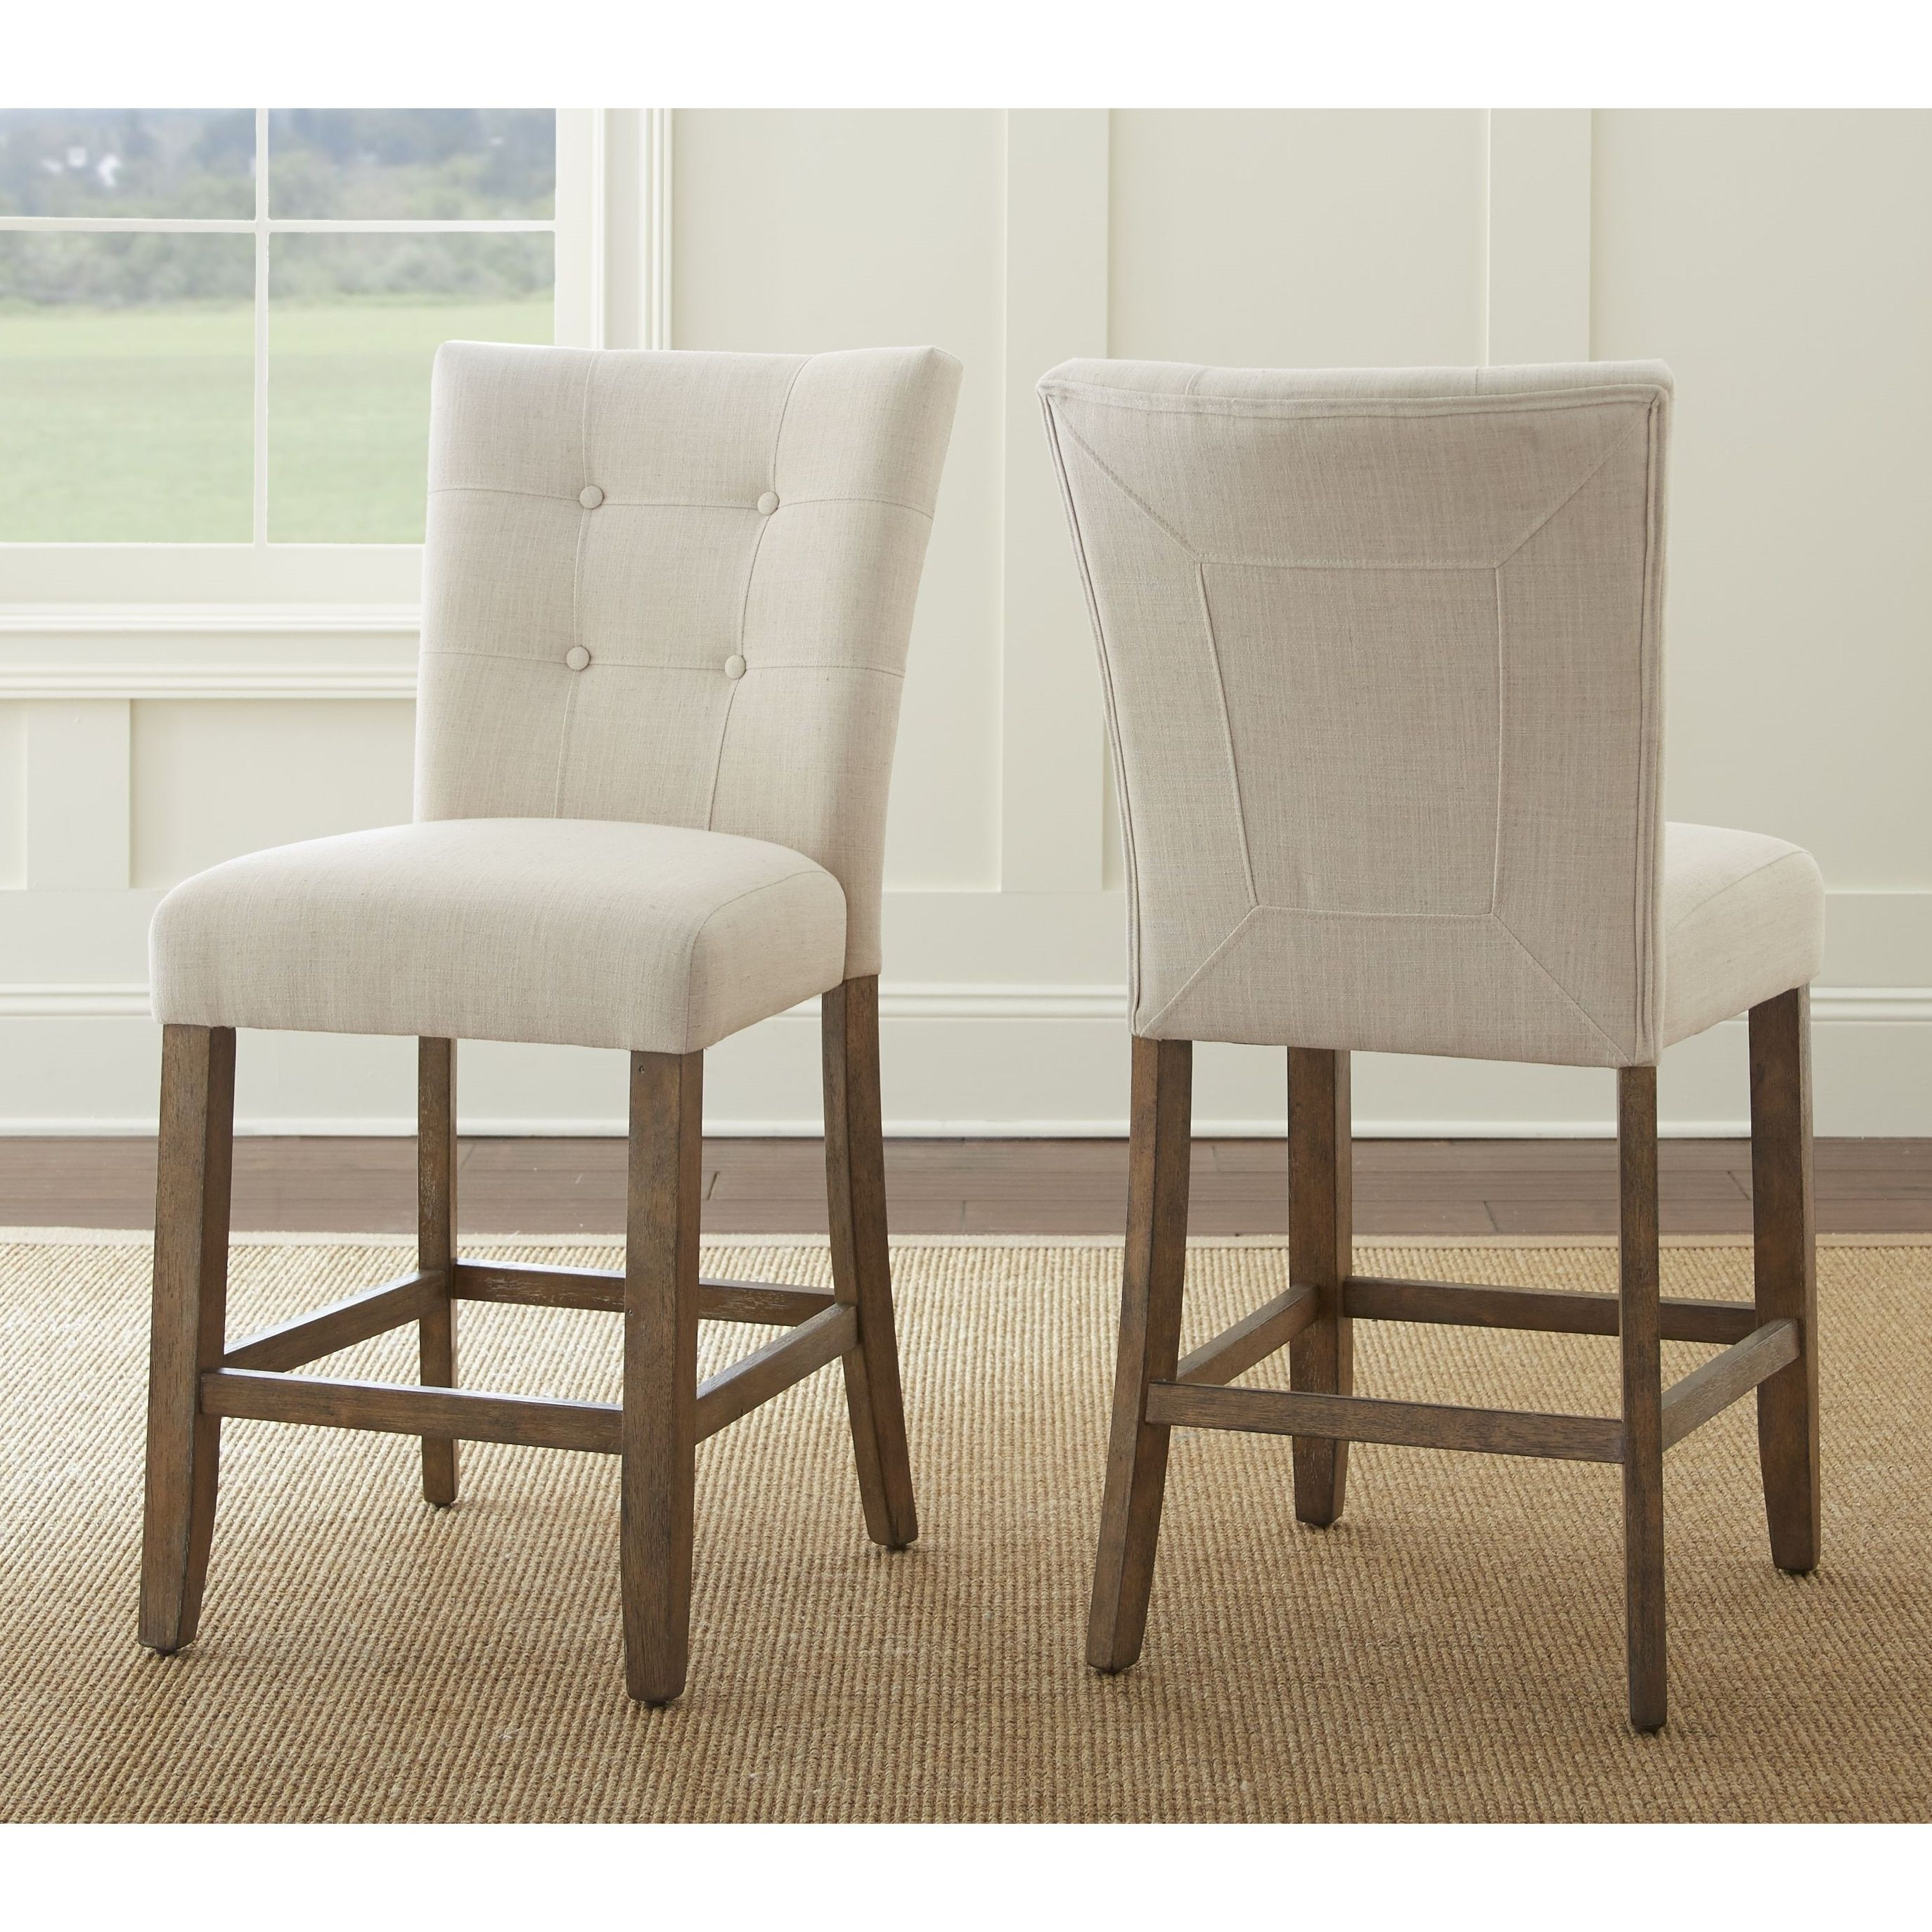 The Gray Barn Brush Creek Upholstered Counter Height Dining Chair Set Of 2 Luxury Dining Room Dining Chairs Counter Height Dining Sets